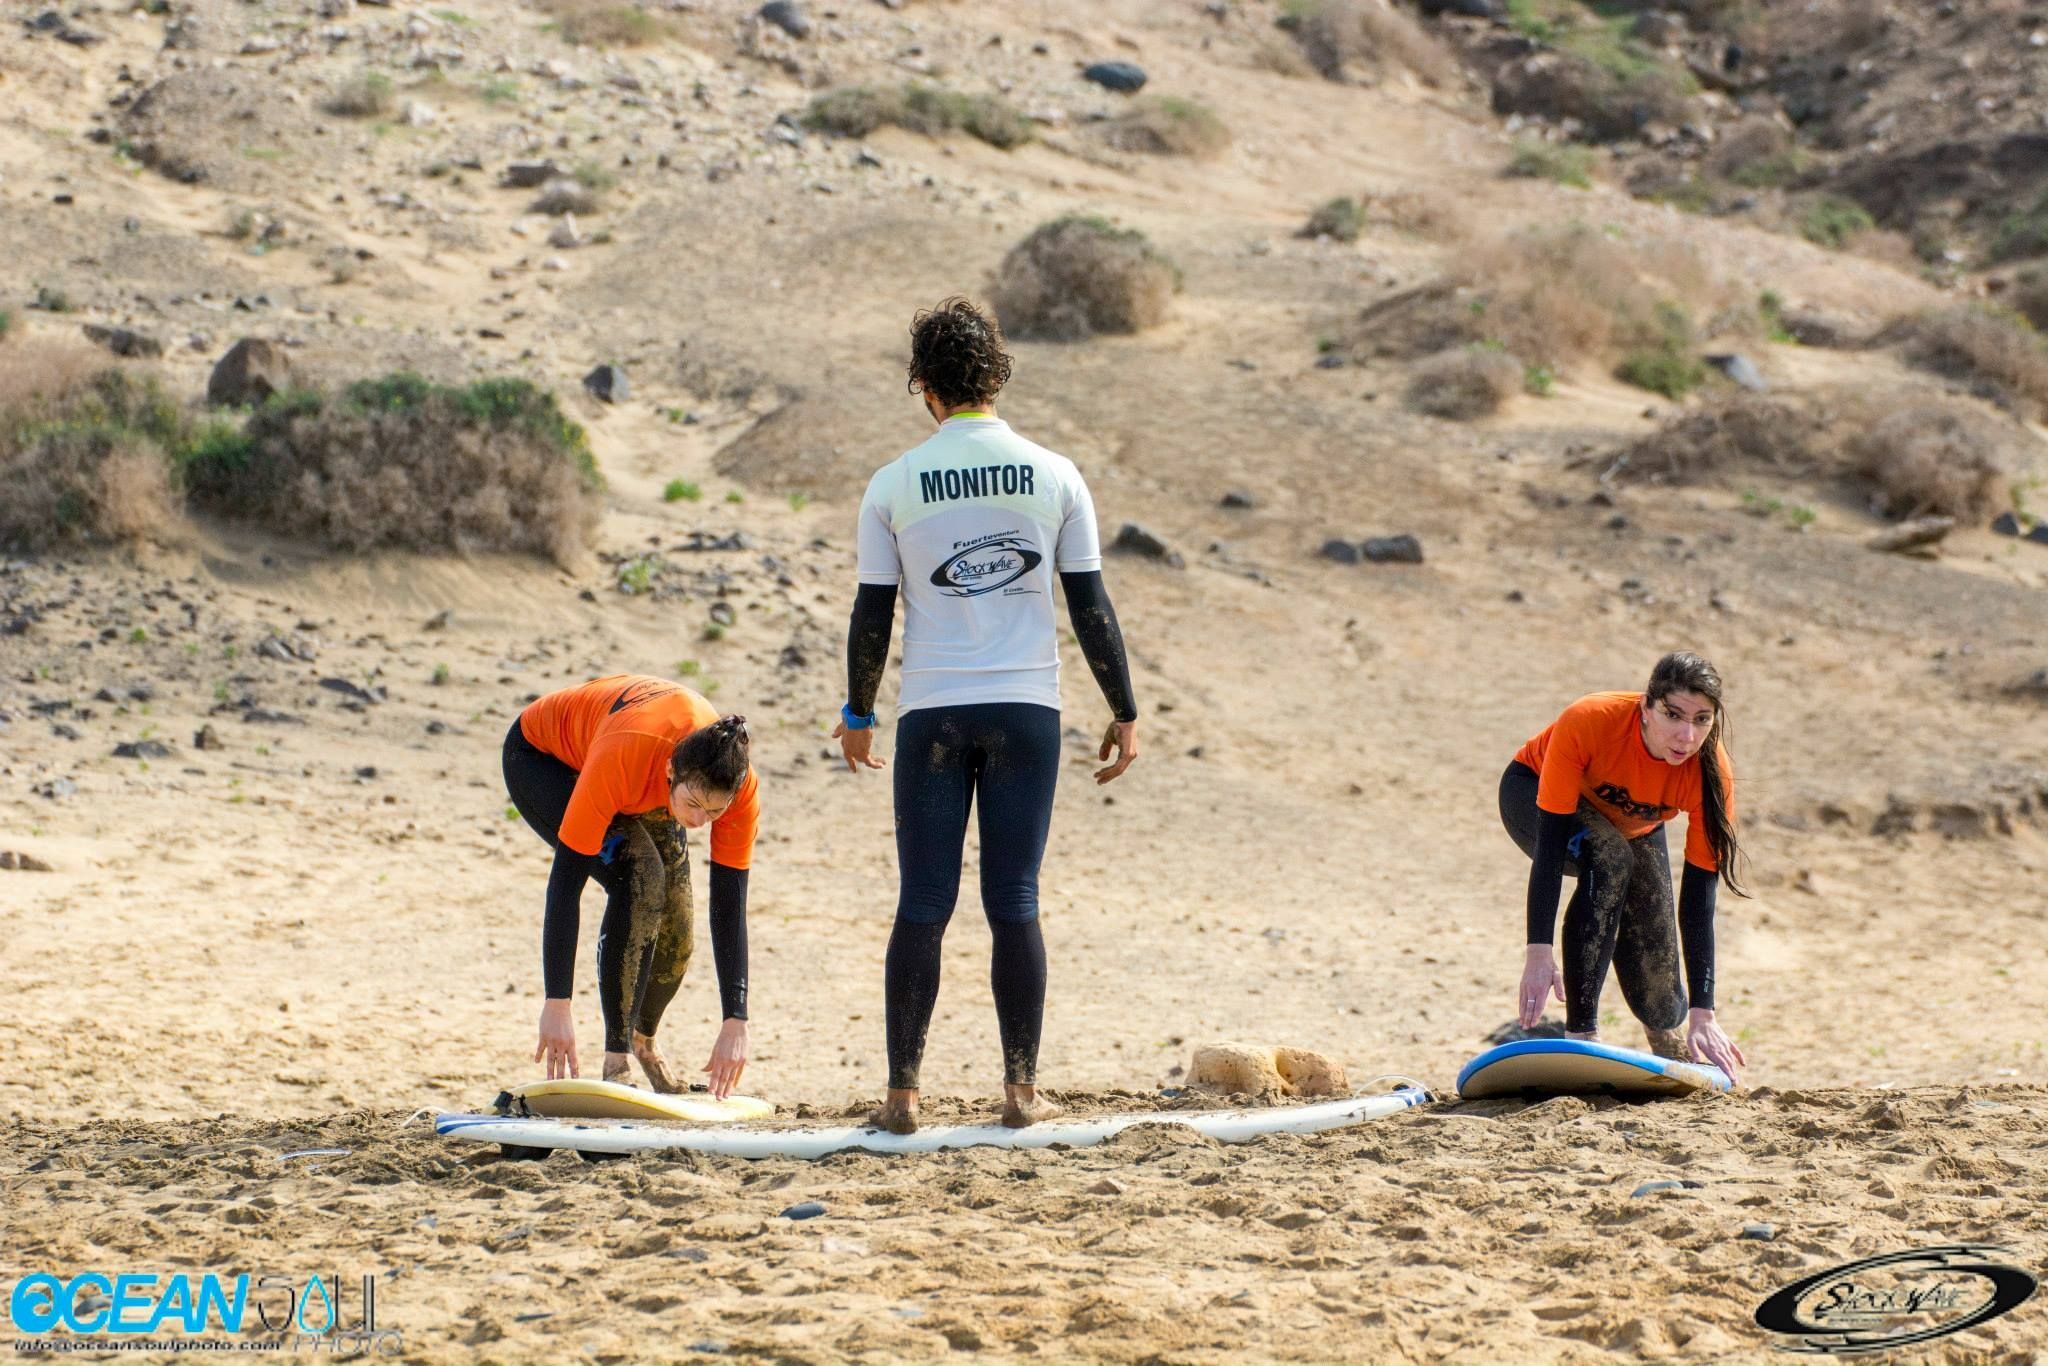 Monitors qualified by the Canarian Surfing Federation